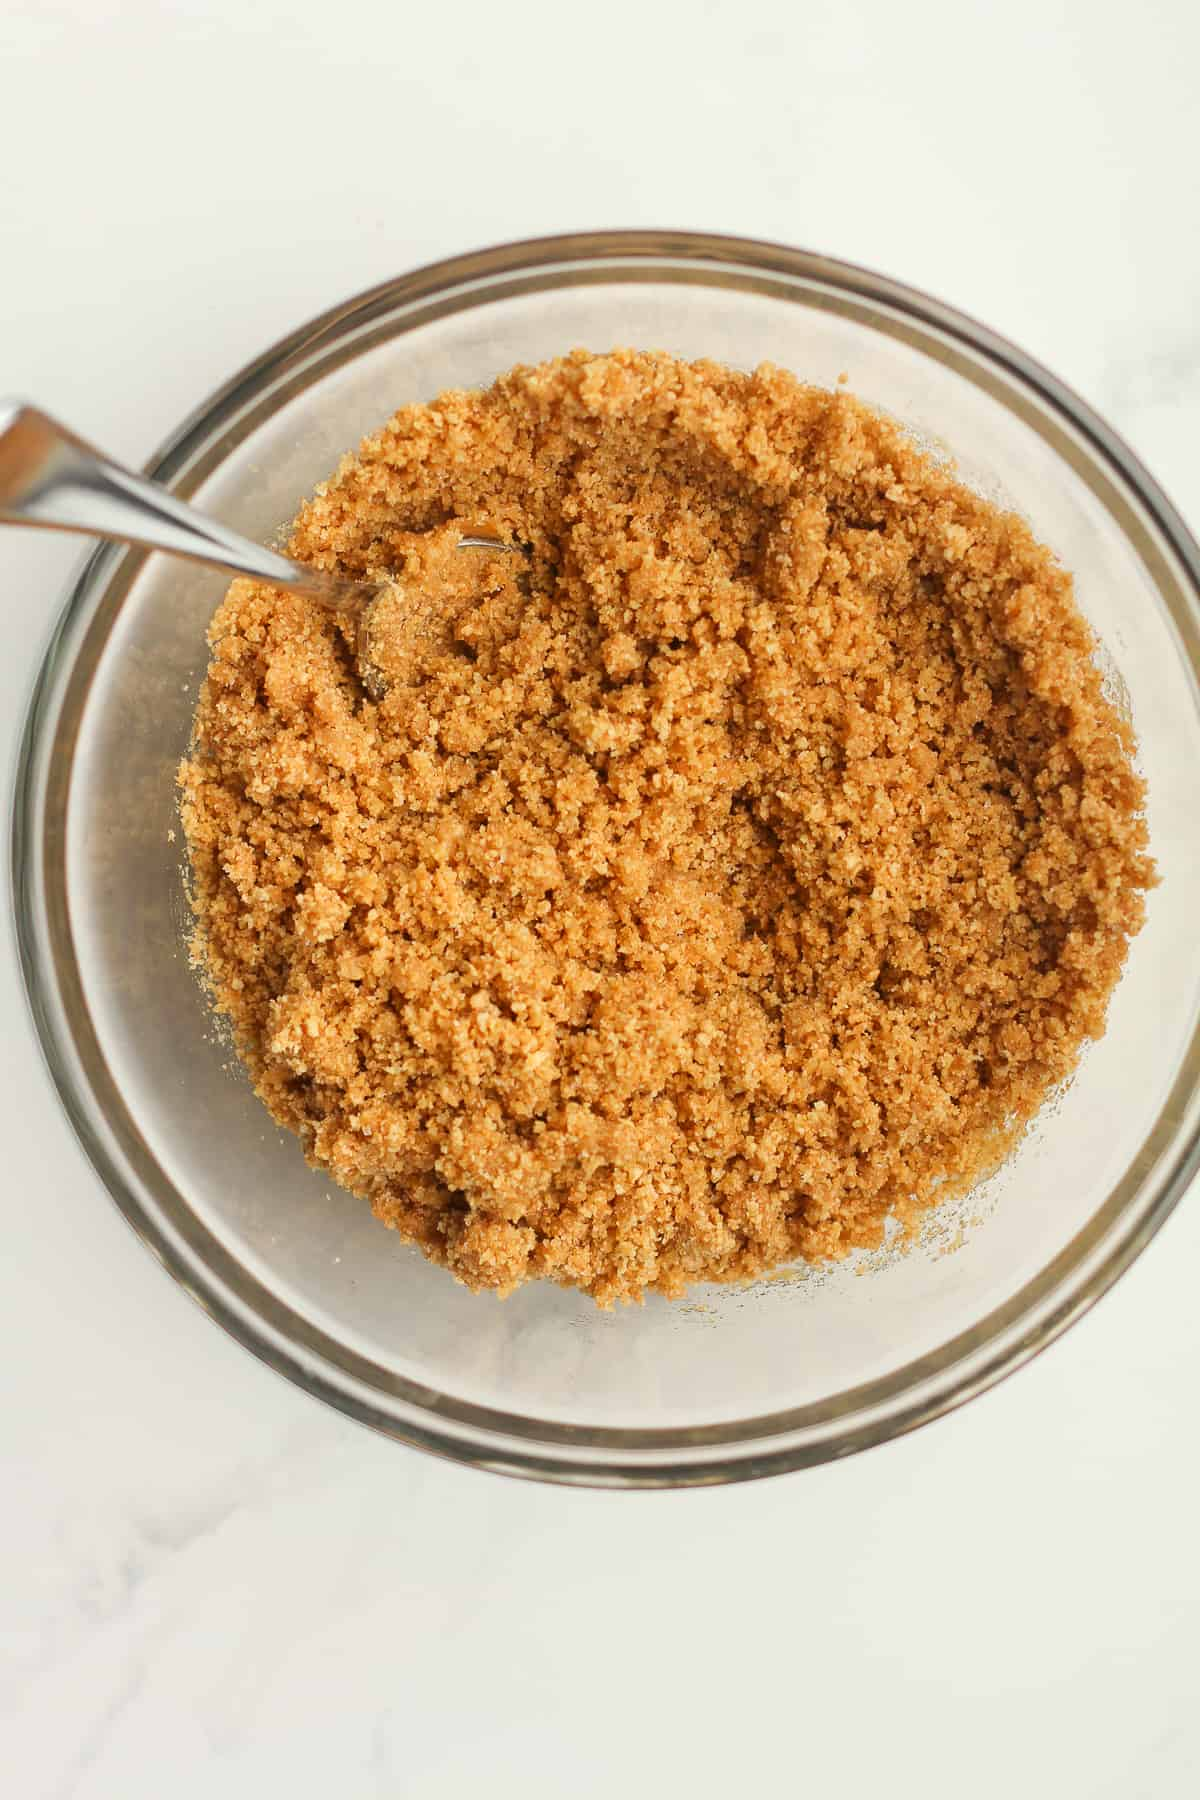 A bowl of the buttered graham cracker crumbs.